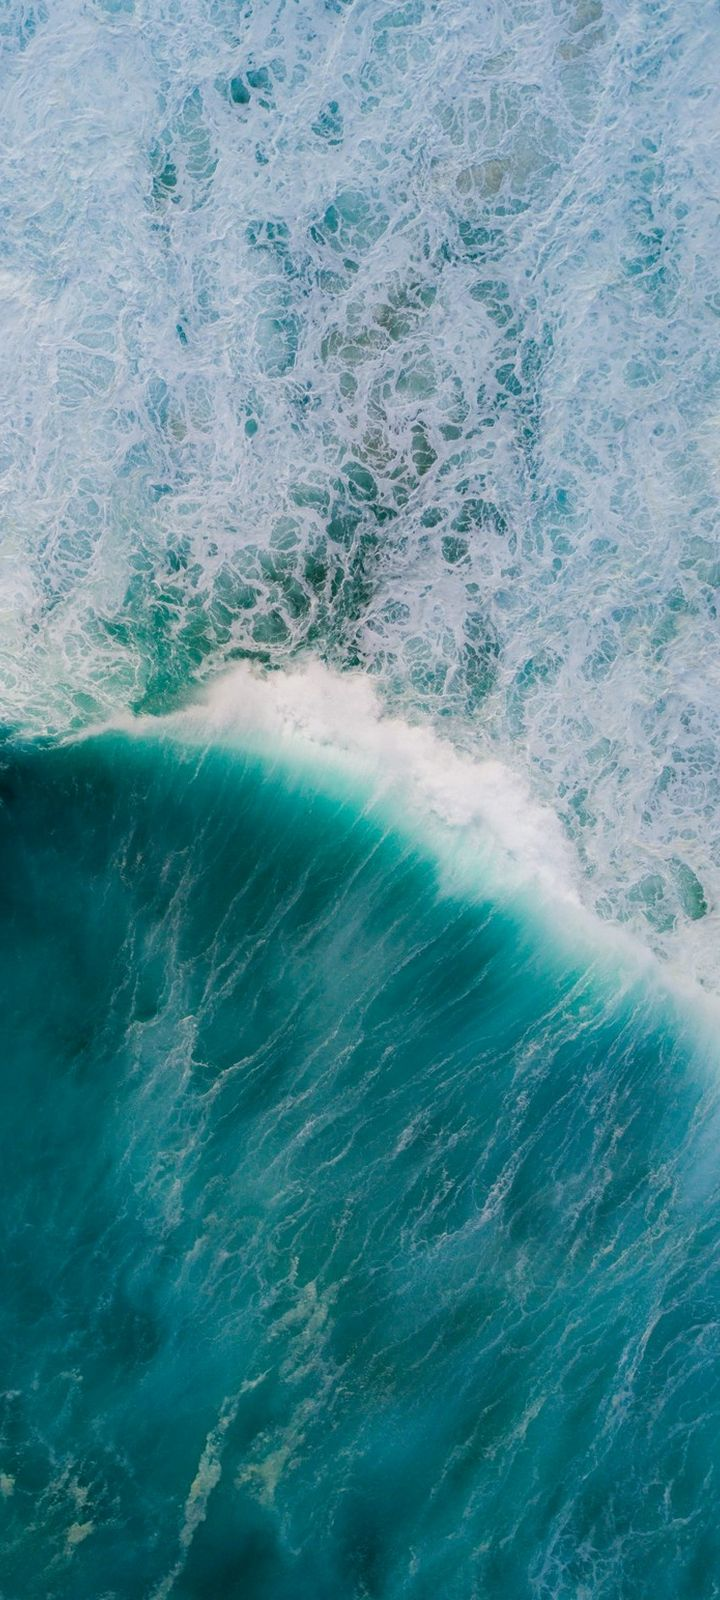 Ocean Waves Aerial View Wallpaper 720x1600